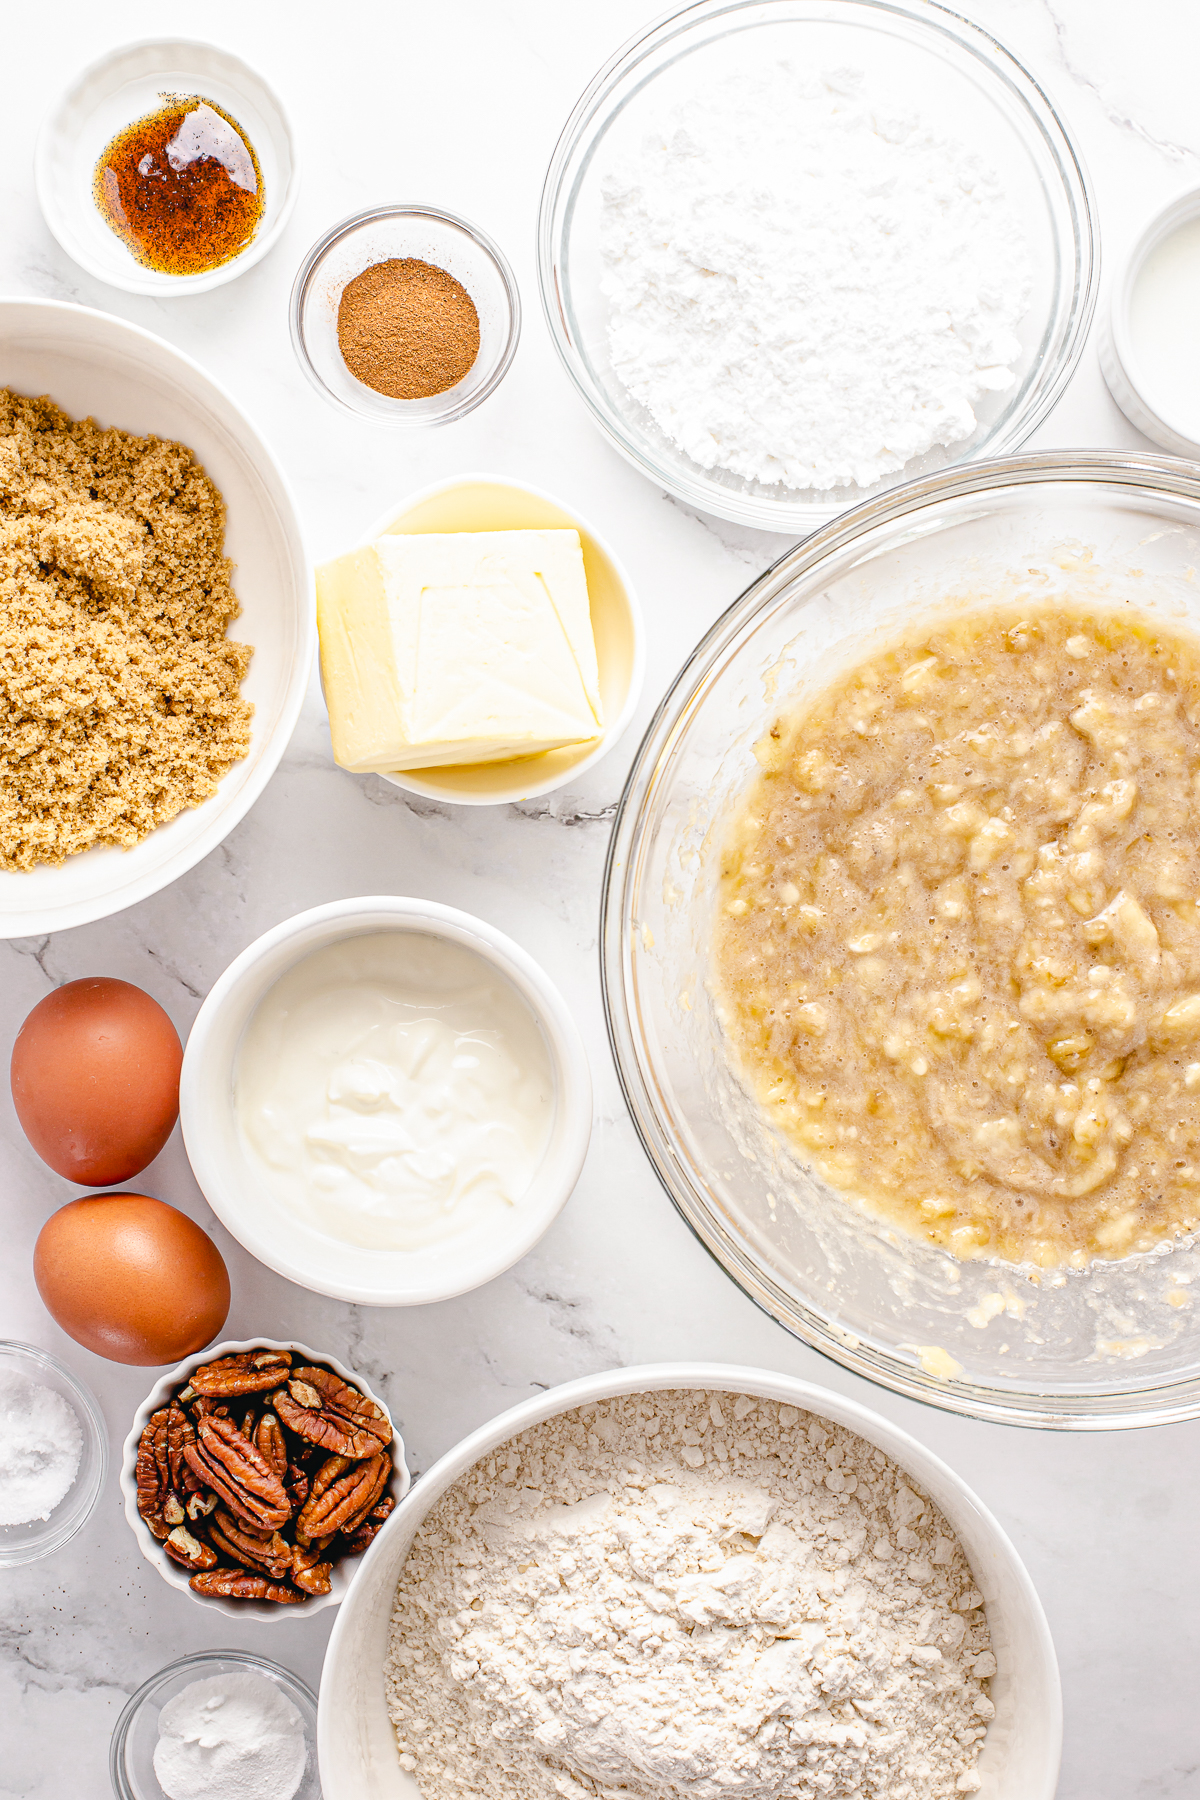 Ingredients needed to make Banana Nut Bread